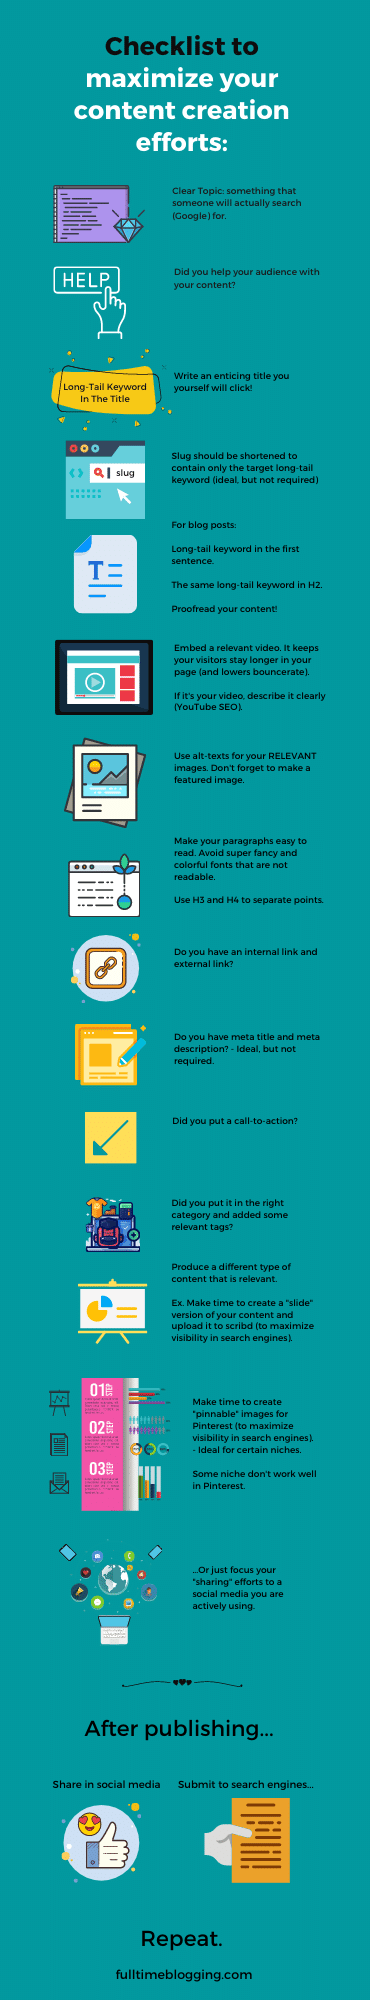 checklist to maximize content creation efforts